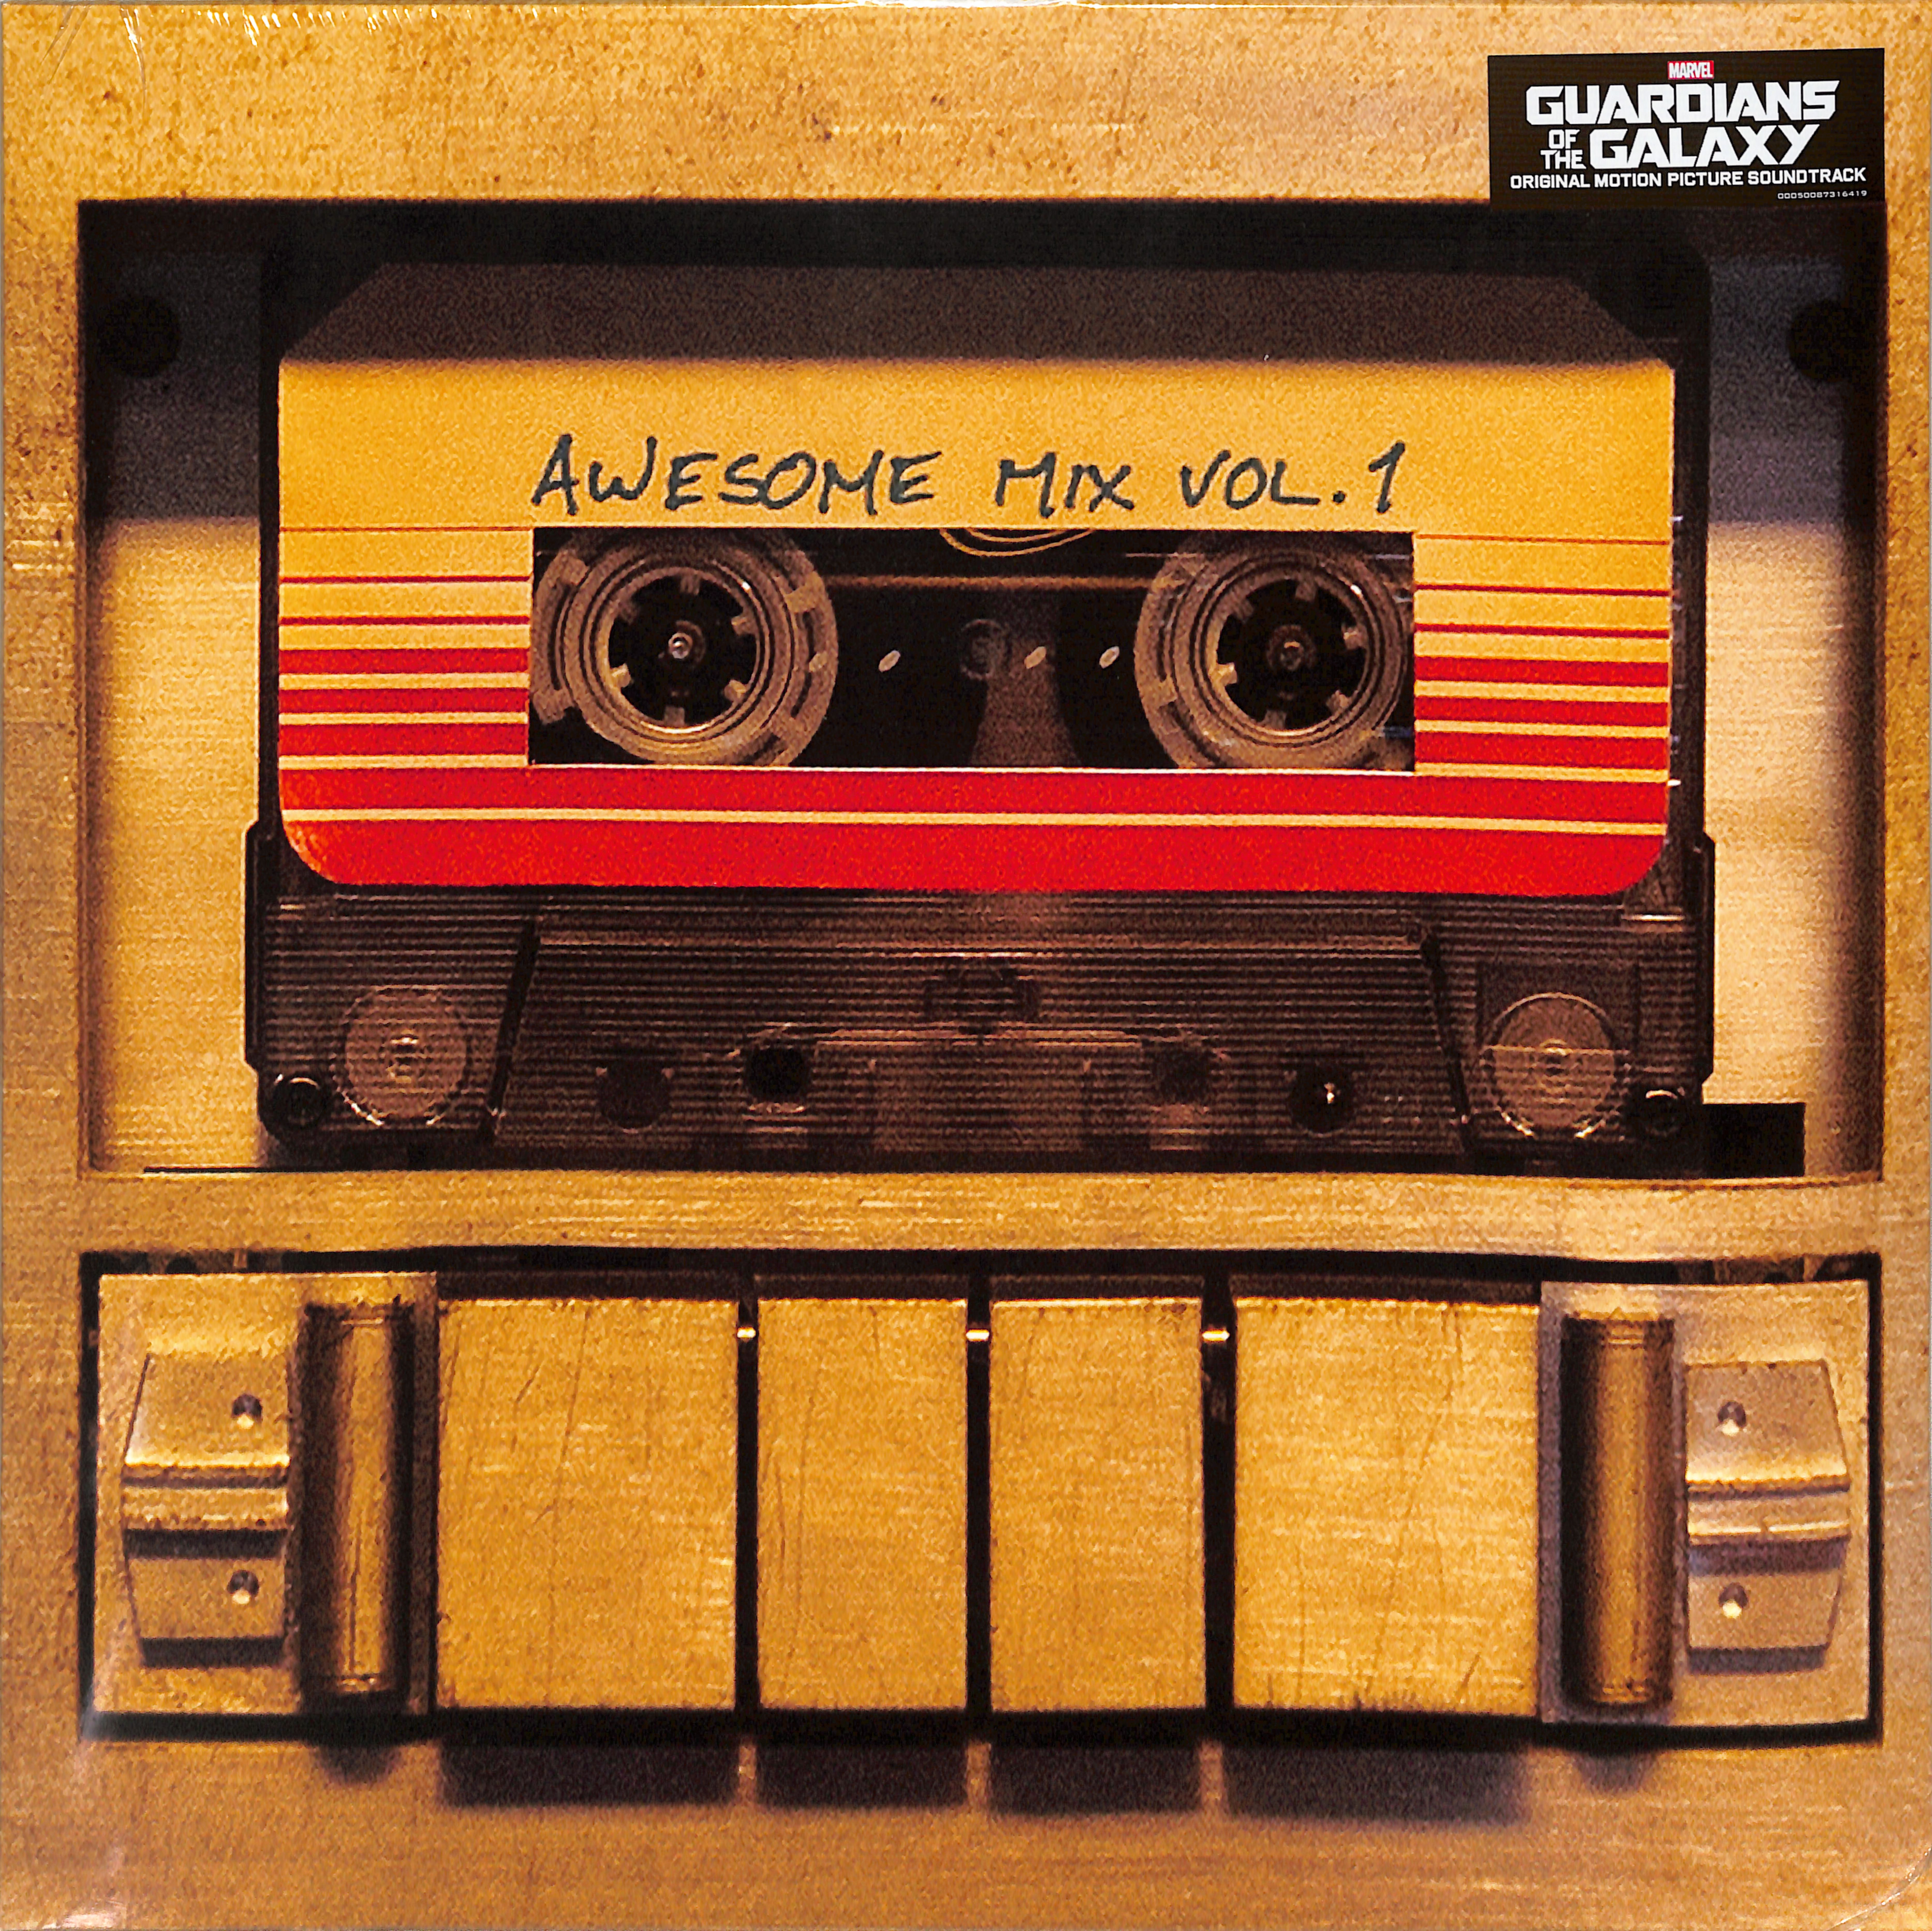 Various Artists - GUARDIANS OF THE GALAXY - AWESOME MIX VOL. 1